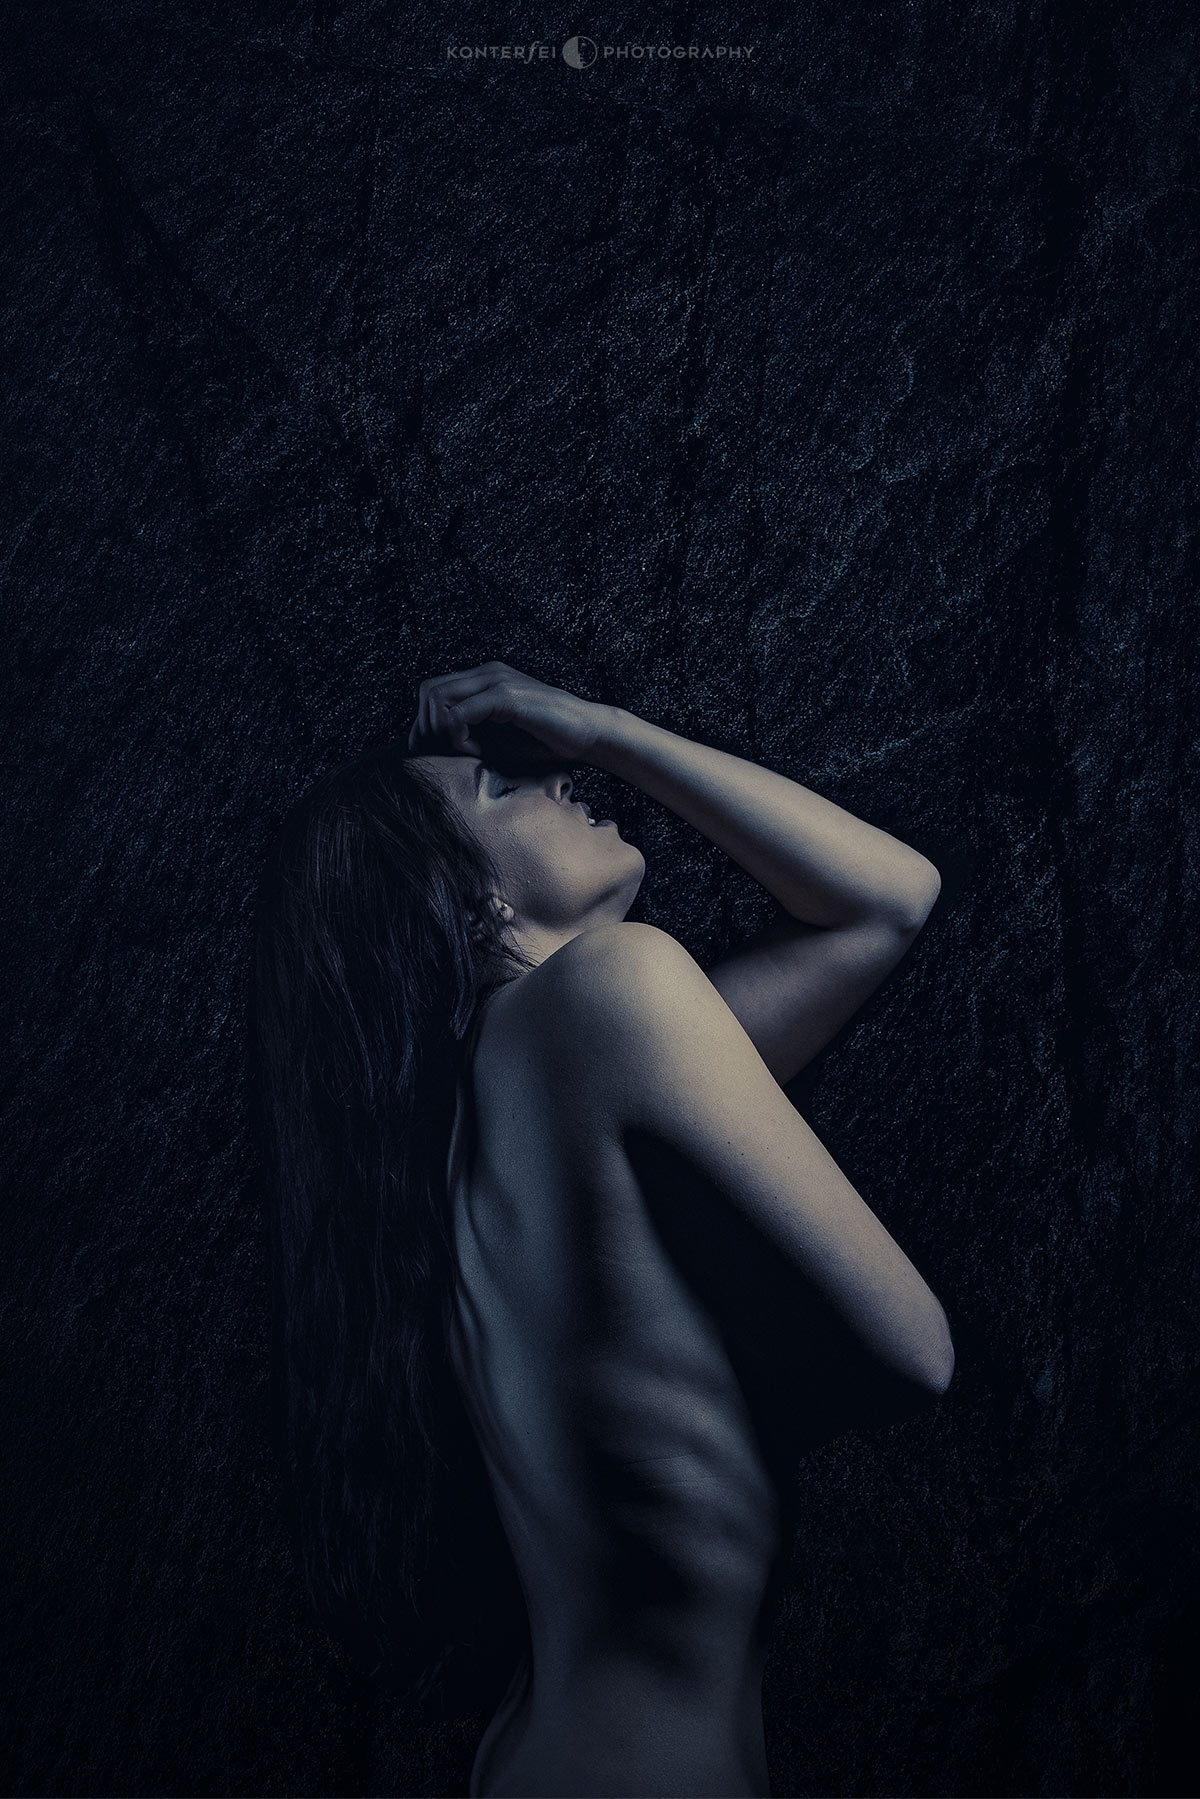 Sorrow in Disguise   Akt & Boudoir   Photography